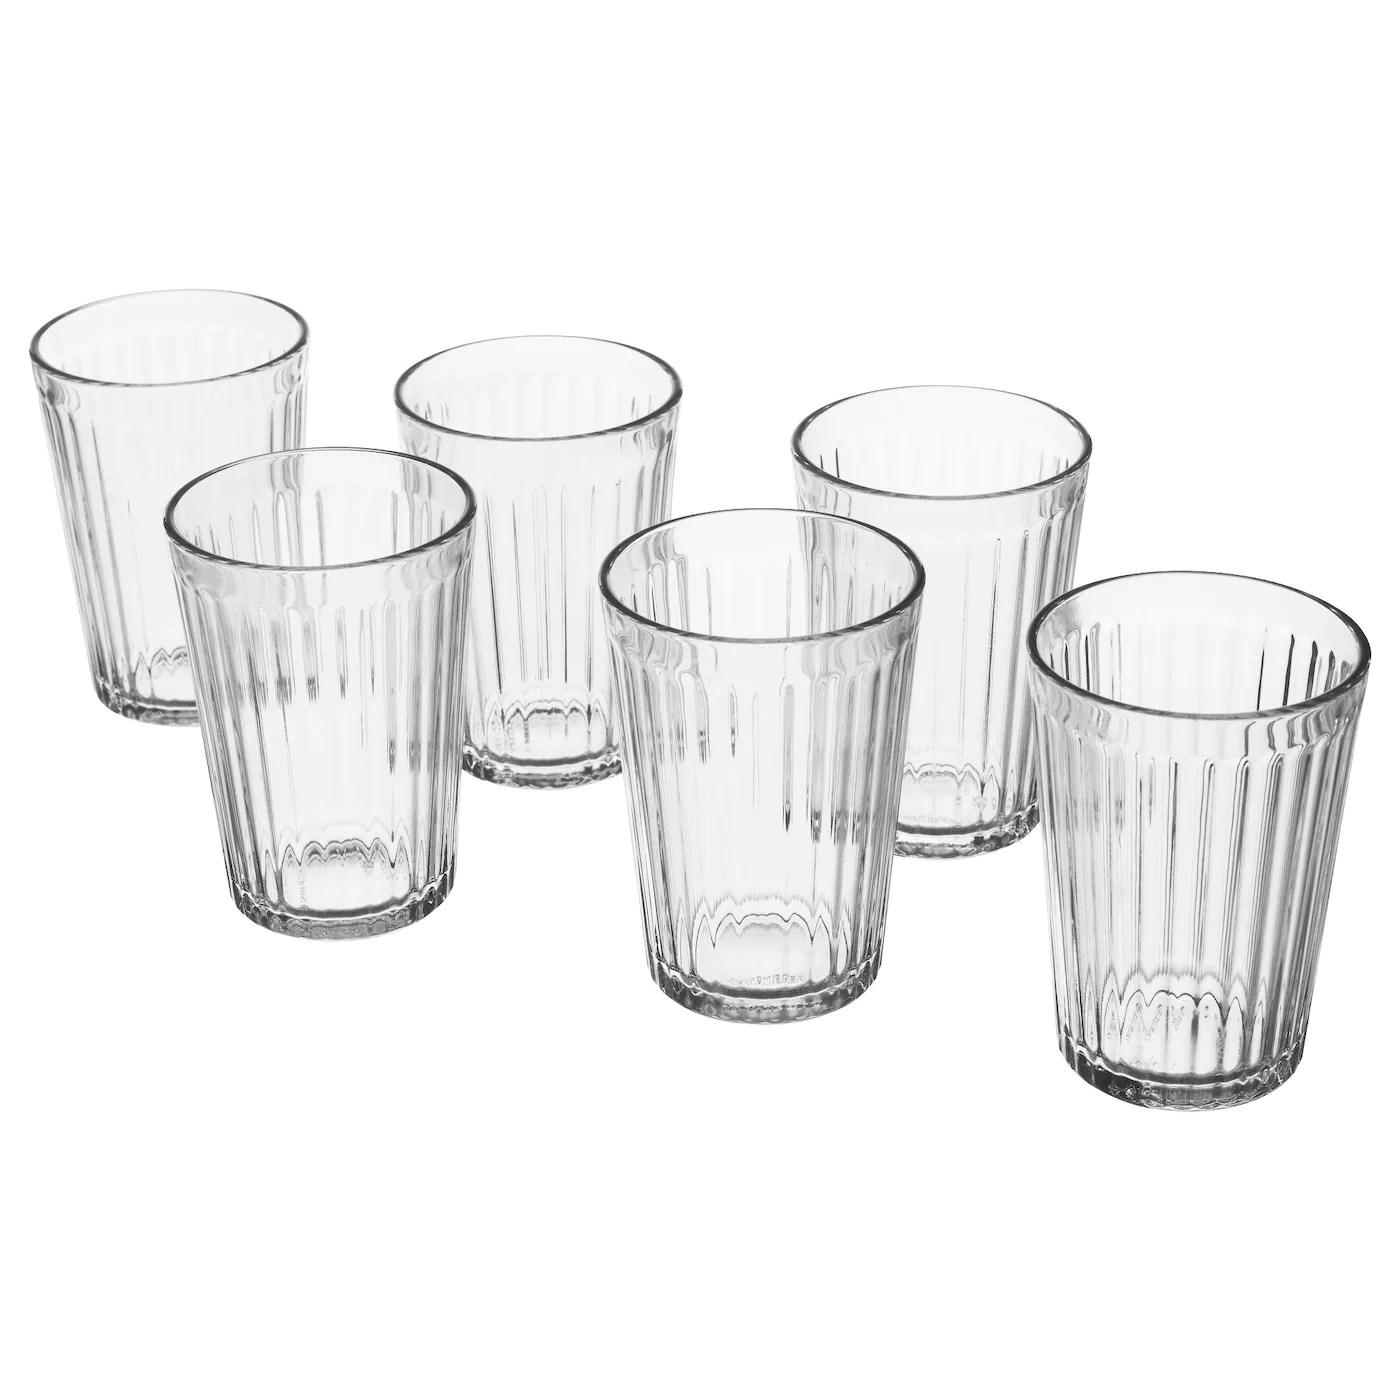 Ikea Glass Cups Glasses & Drinking Glasses | Ikea